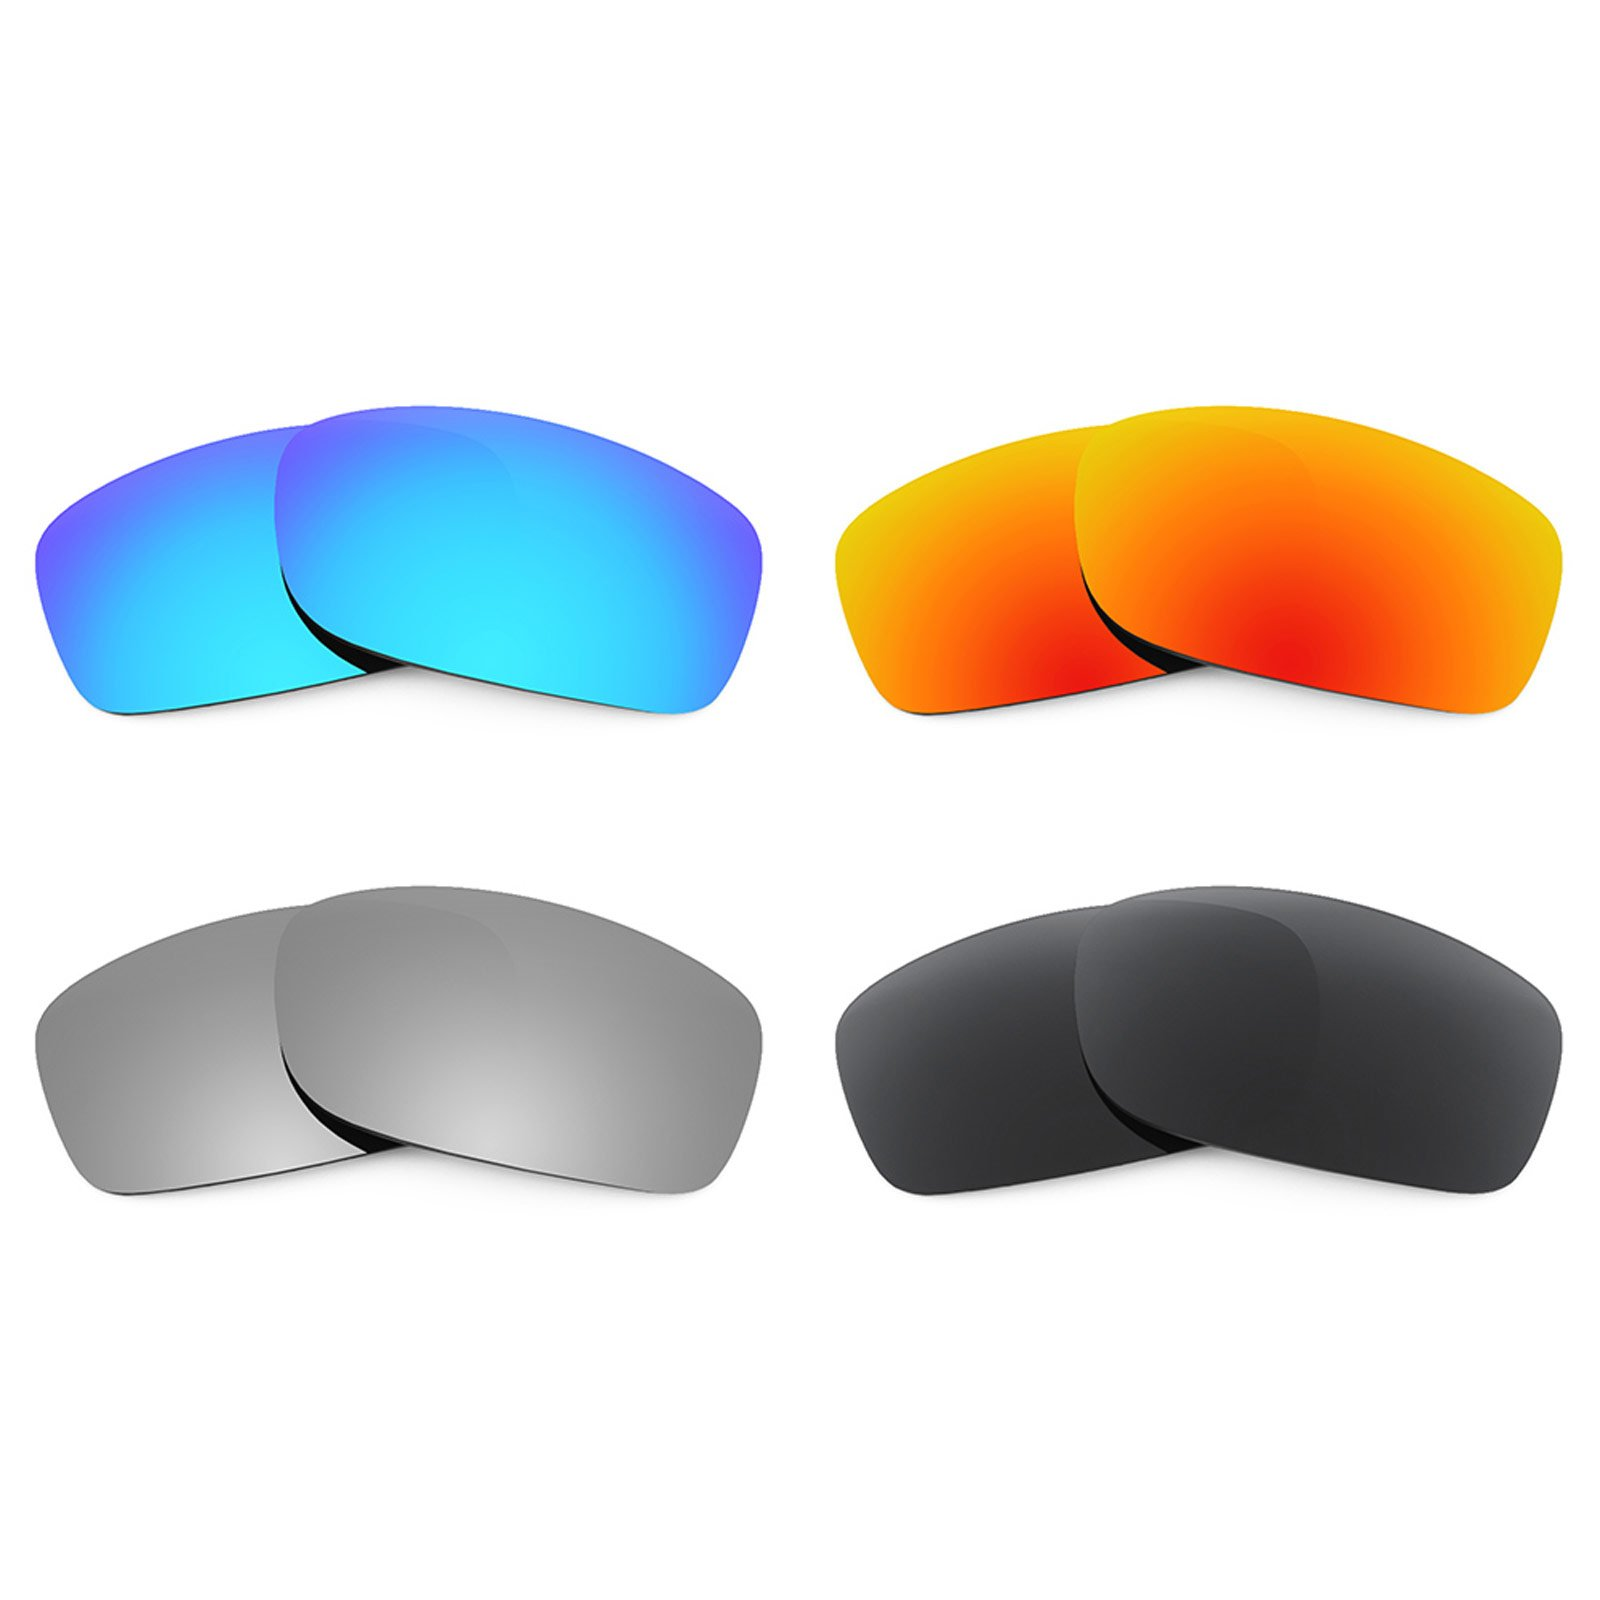 Revant Replacement Lenses for Oakley Fives Squared 4 Pair Combo Pack K018 by Revant